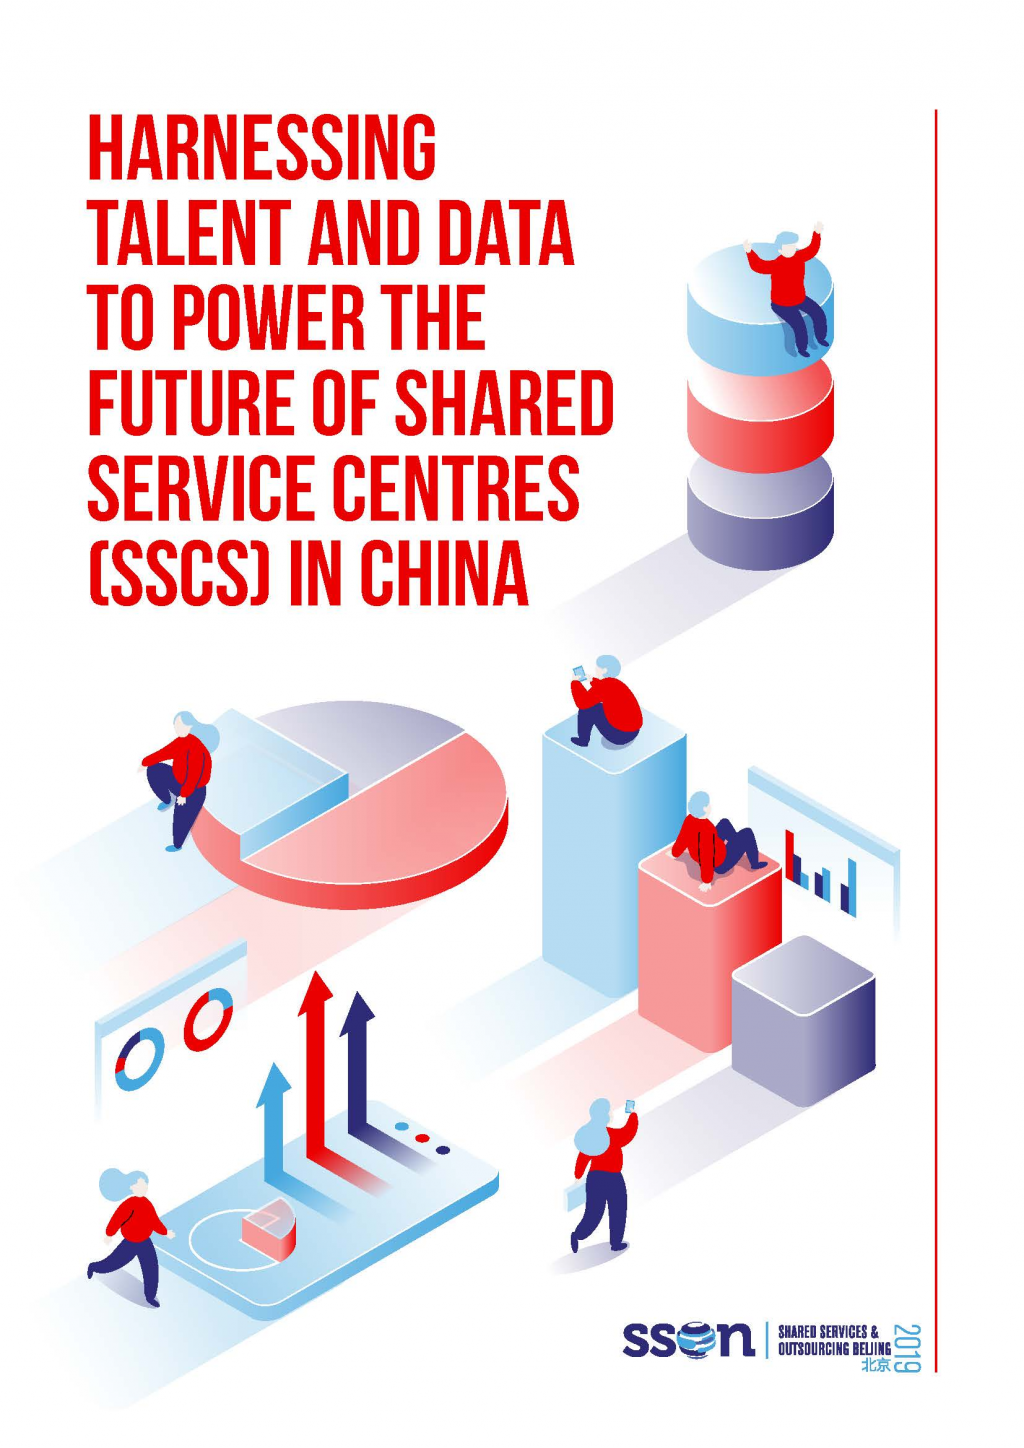 Download the Analysis Report - Harnessing talent and data to power the future of Shared Service Centres (SSCs) in China